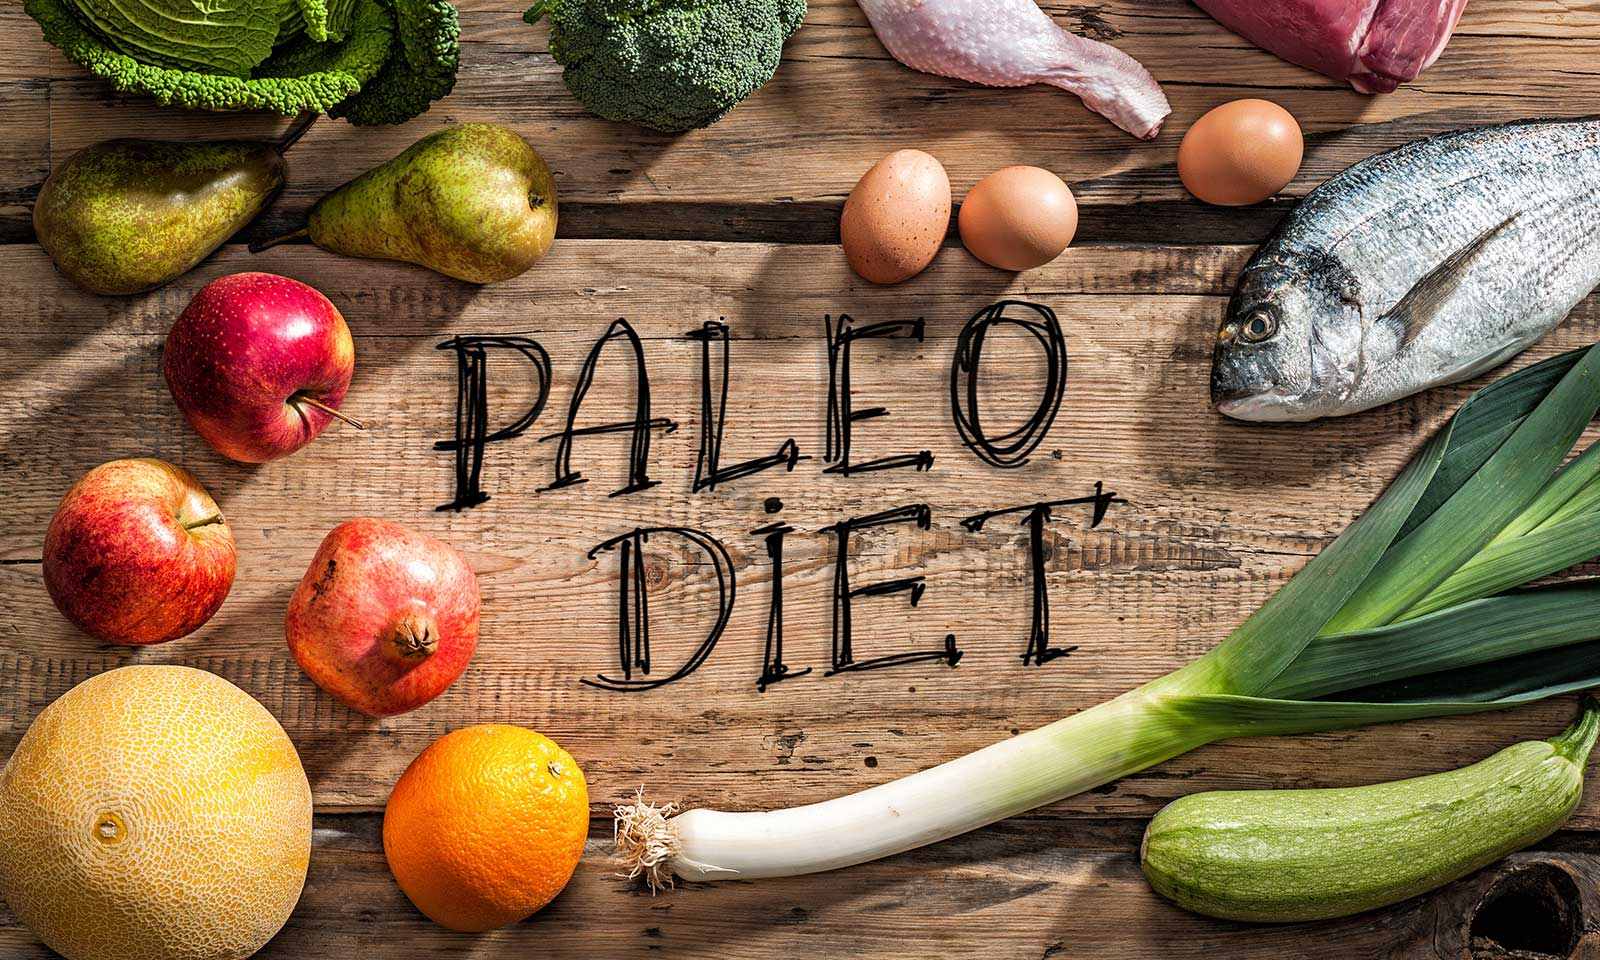 paleo-diet-tips-for-losing-weight